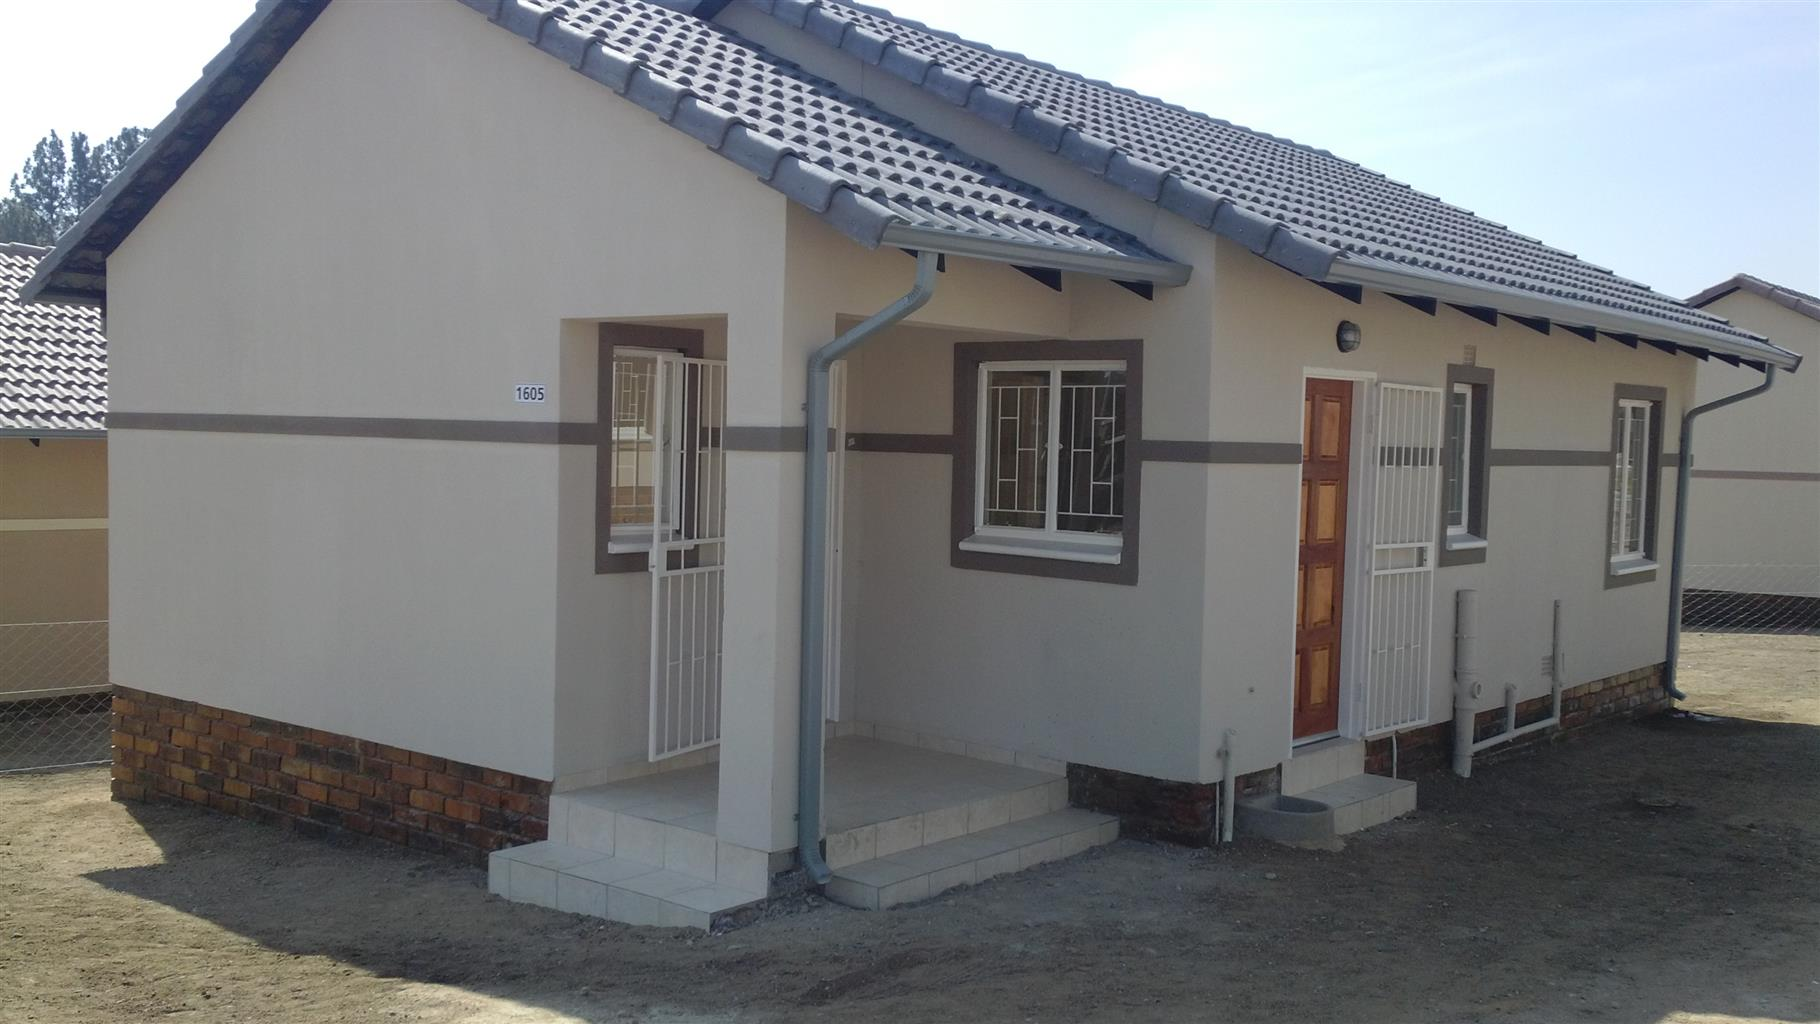 CHARMING 2 BEDROOM HOUSE FOR SALE